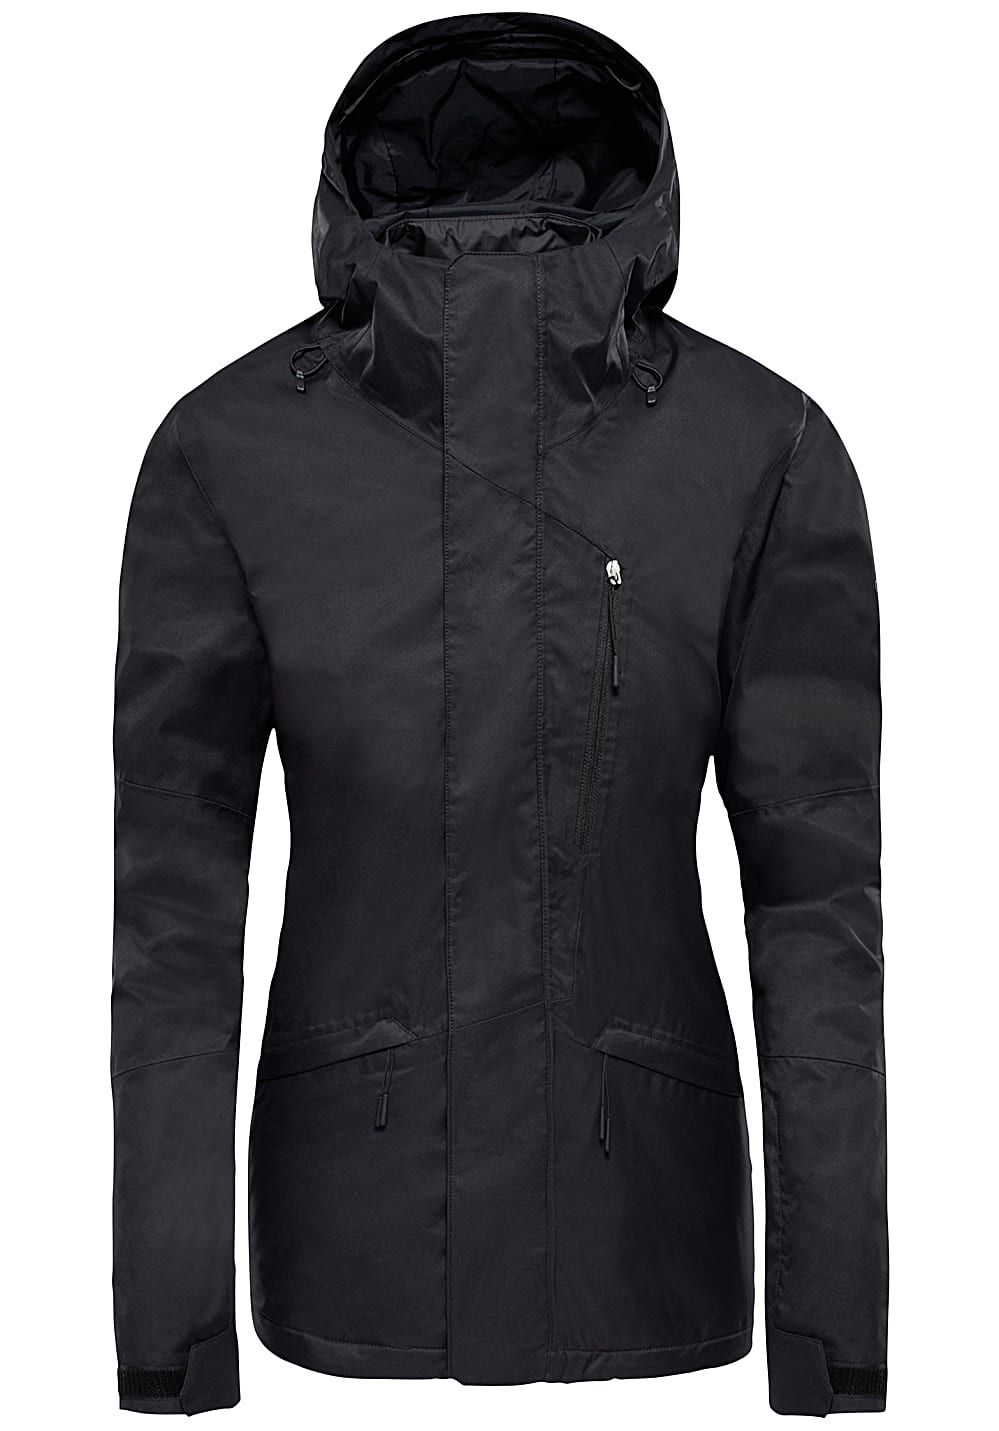 c5bcc44ef THE NORTH FACE Thermoball Snow Triclimate - Ski Jacket for Women - Black